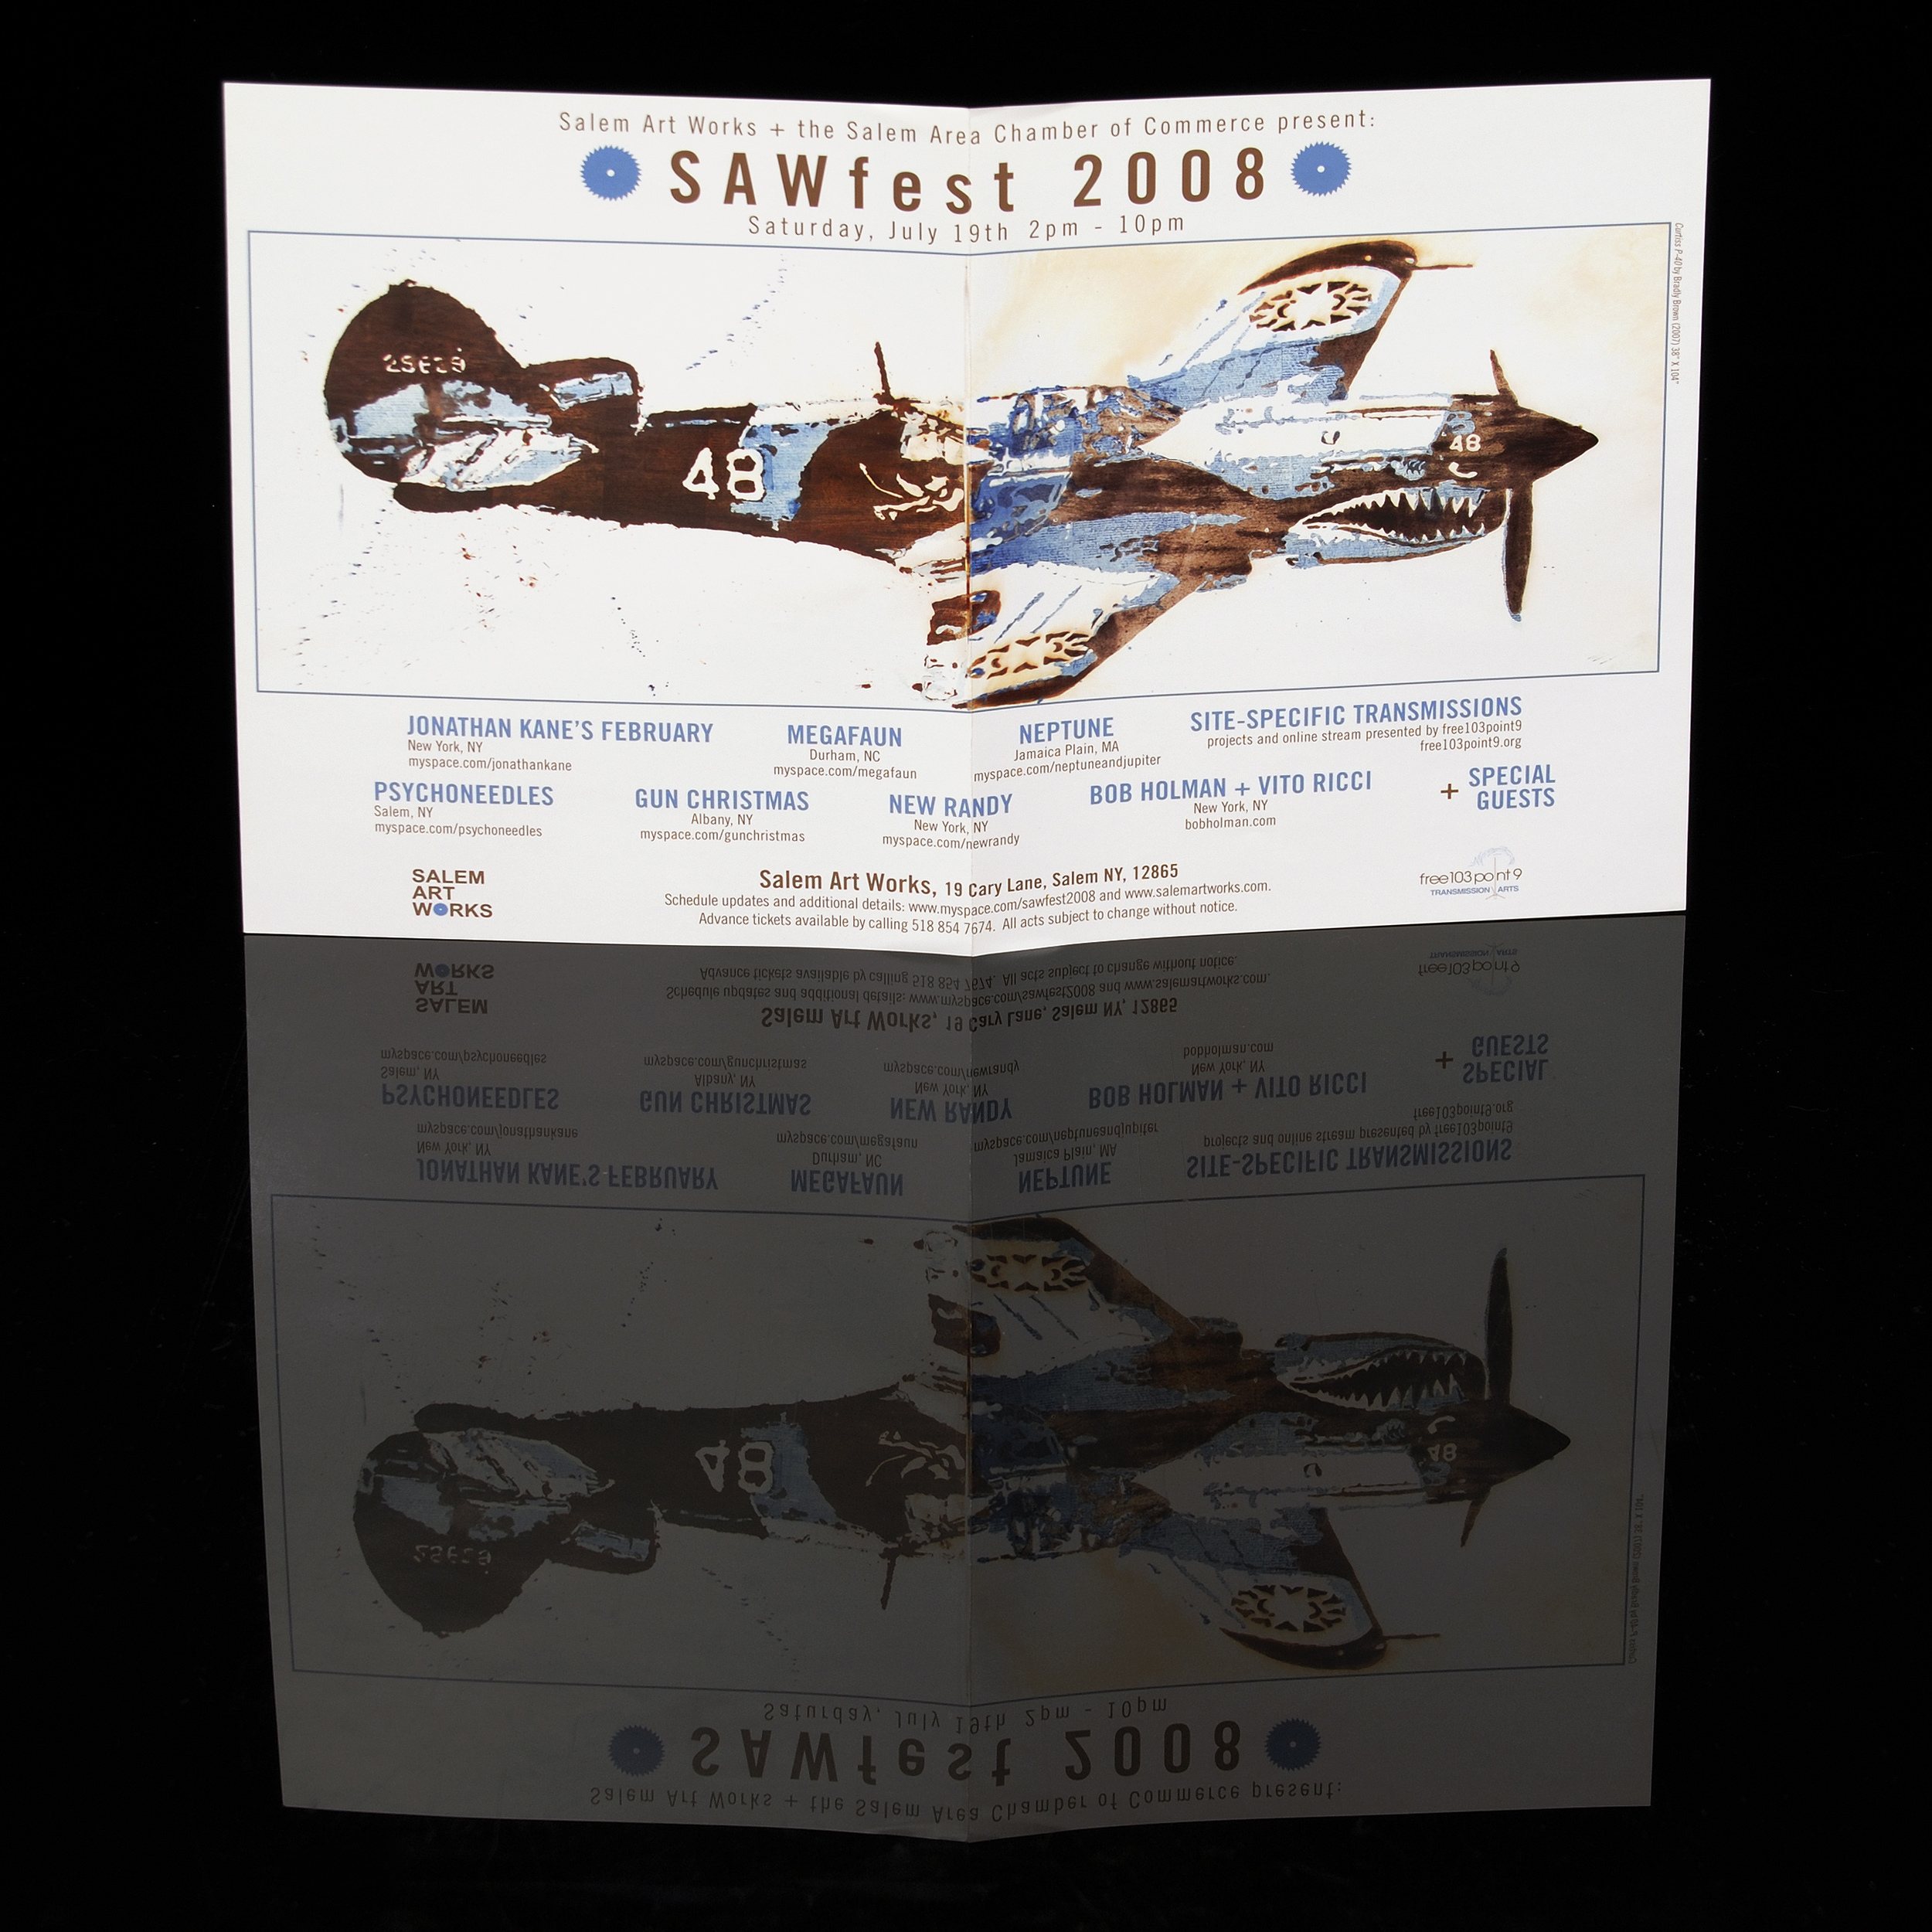 SAWfest Poster (2008)